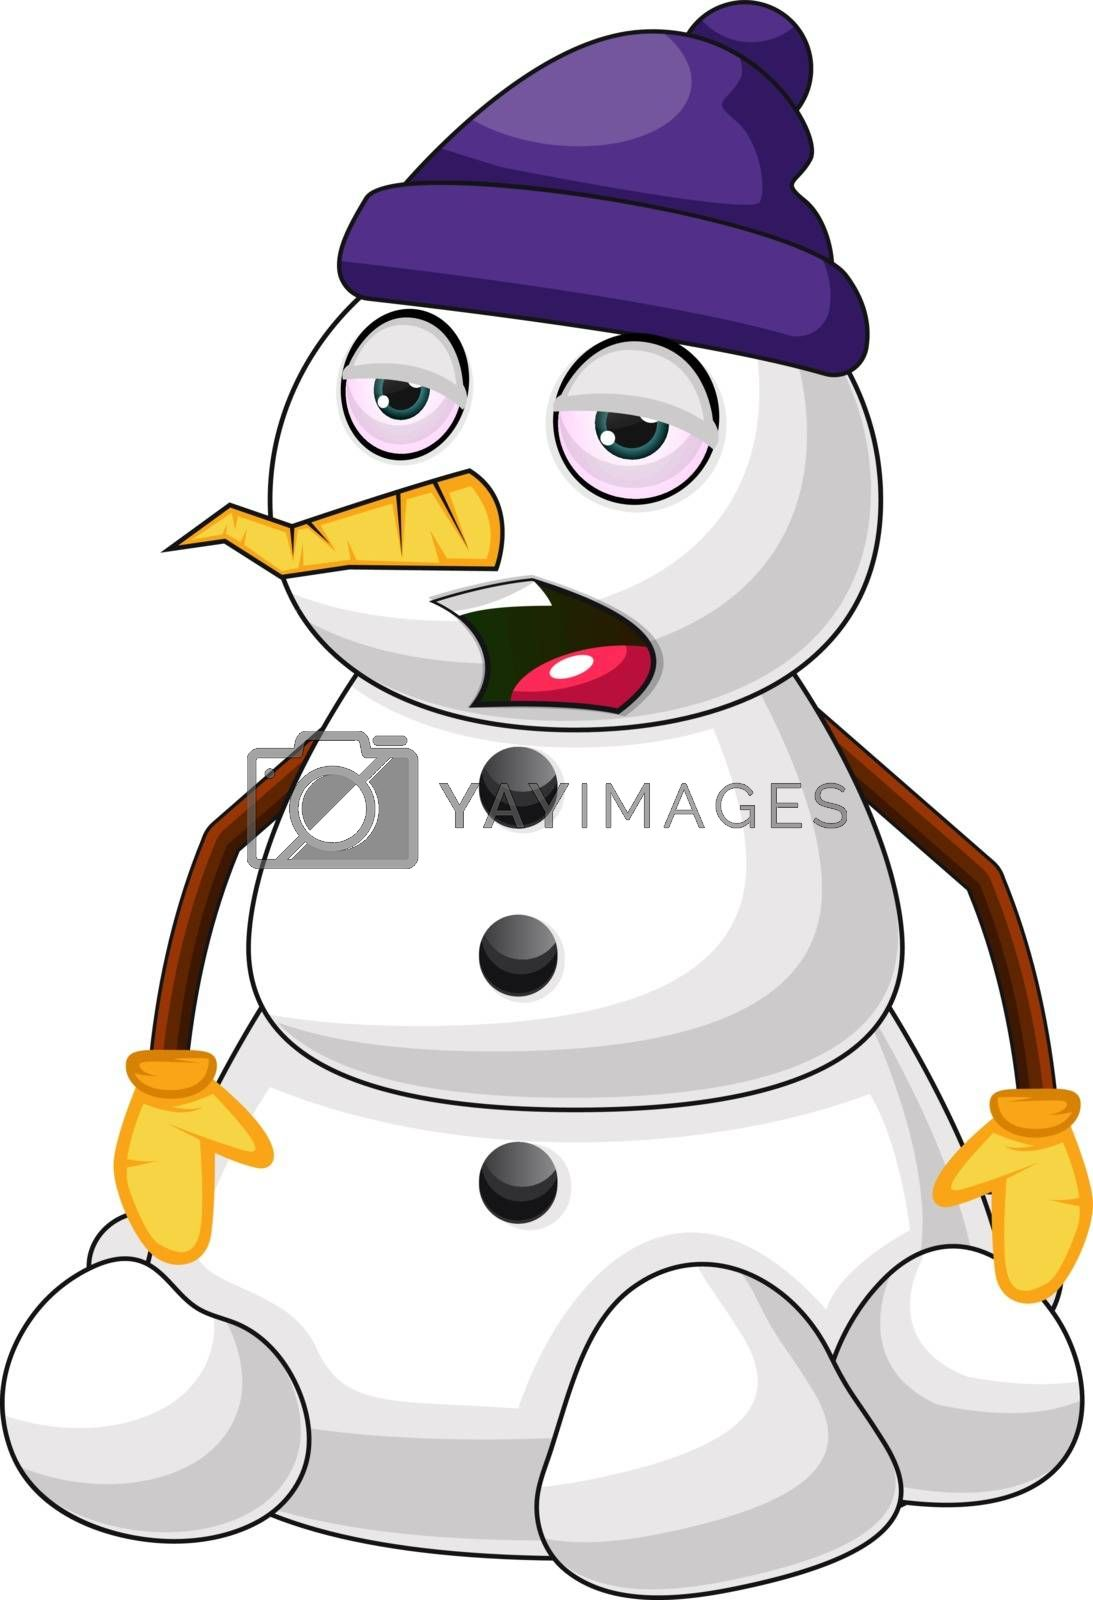 Royalty free image of Sleepy snowman illustration vector on white background by Morphart